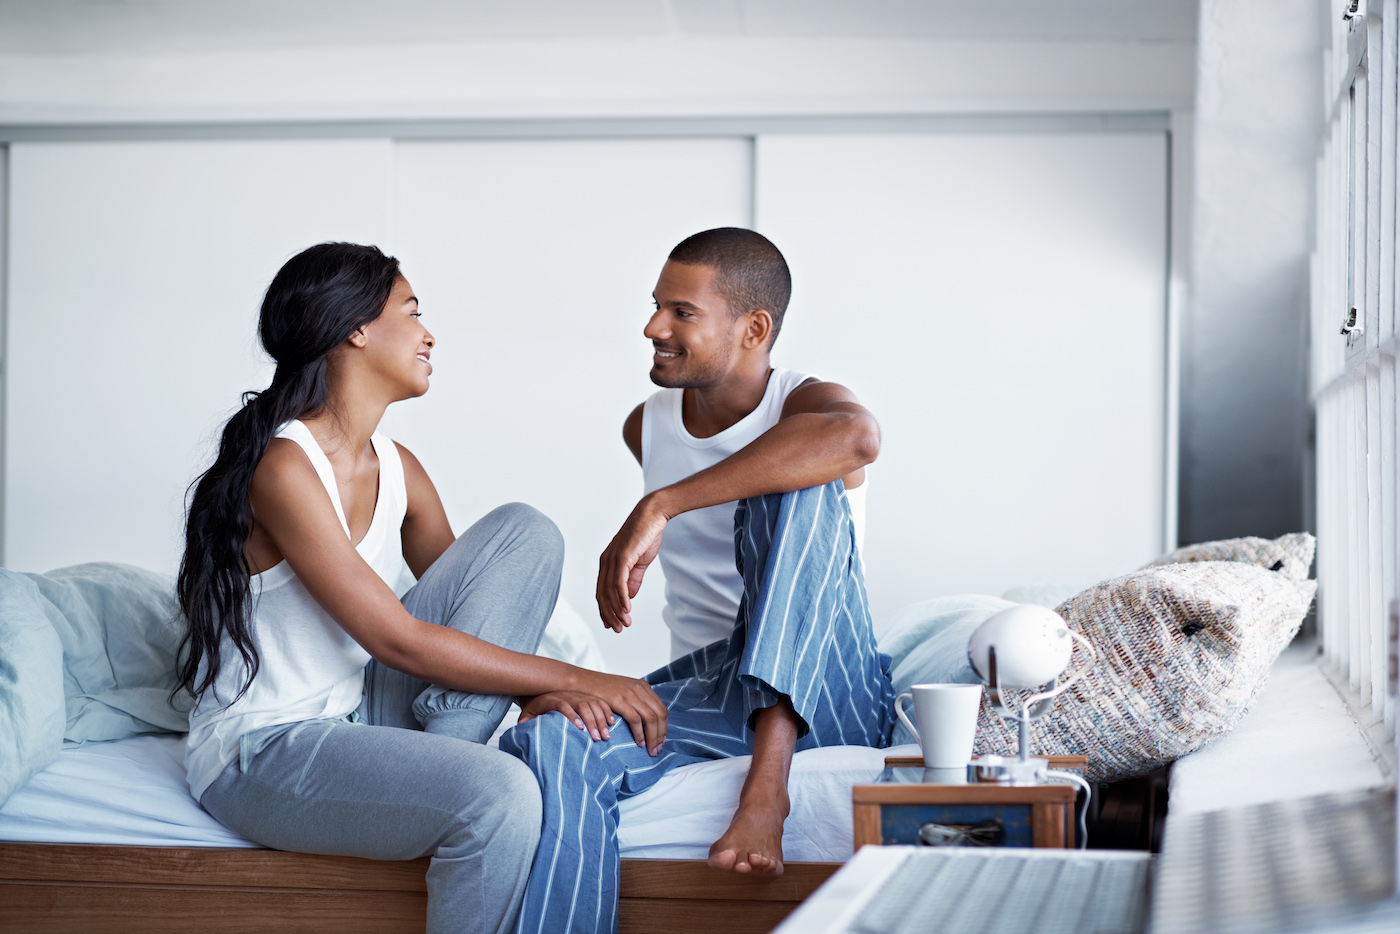 5 tips for getting out of a sex rut when you're in deep